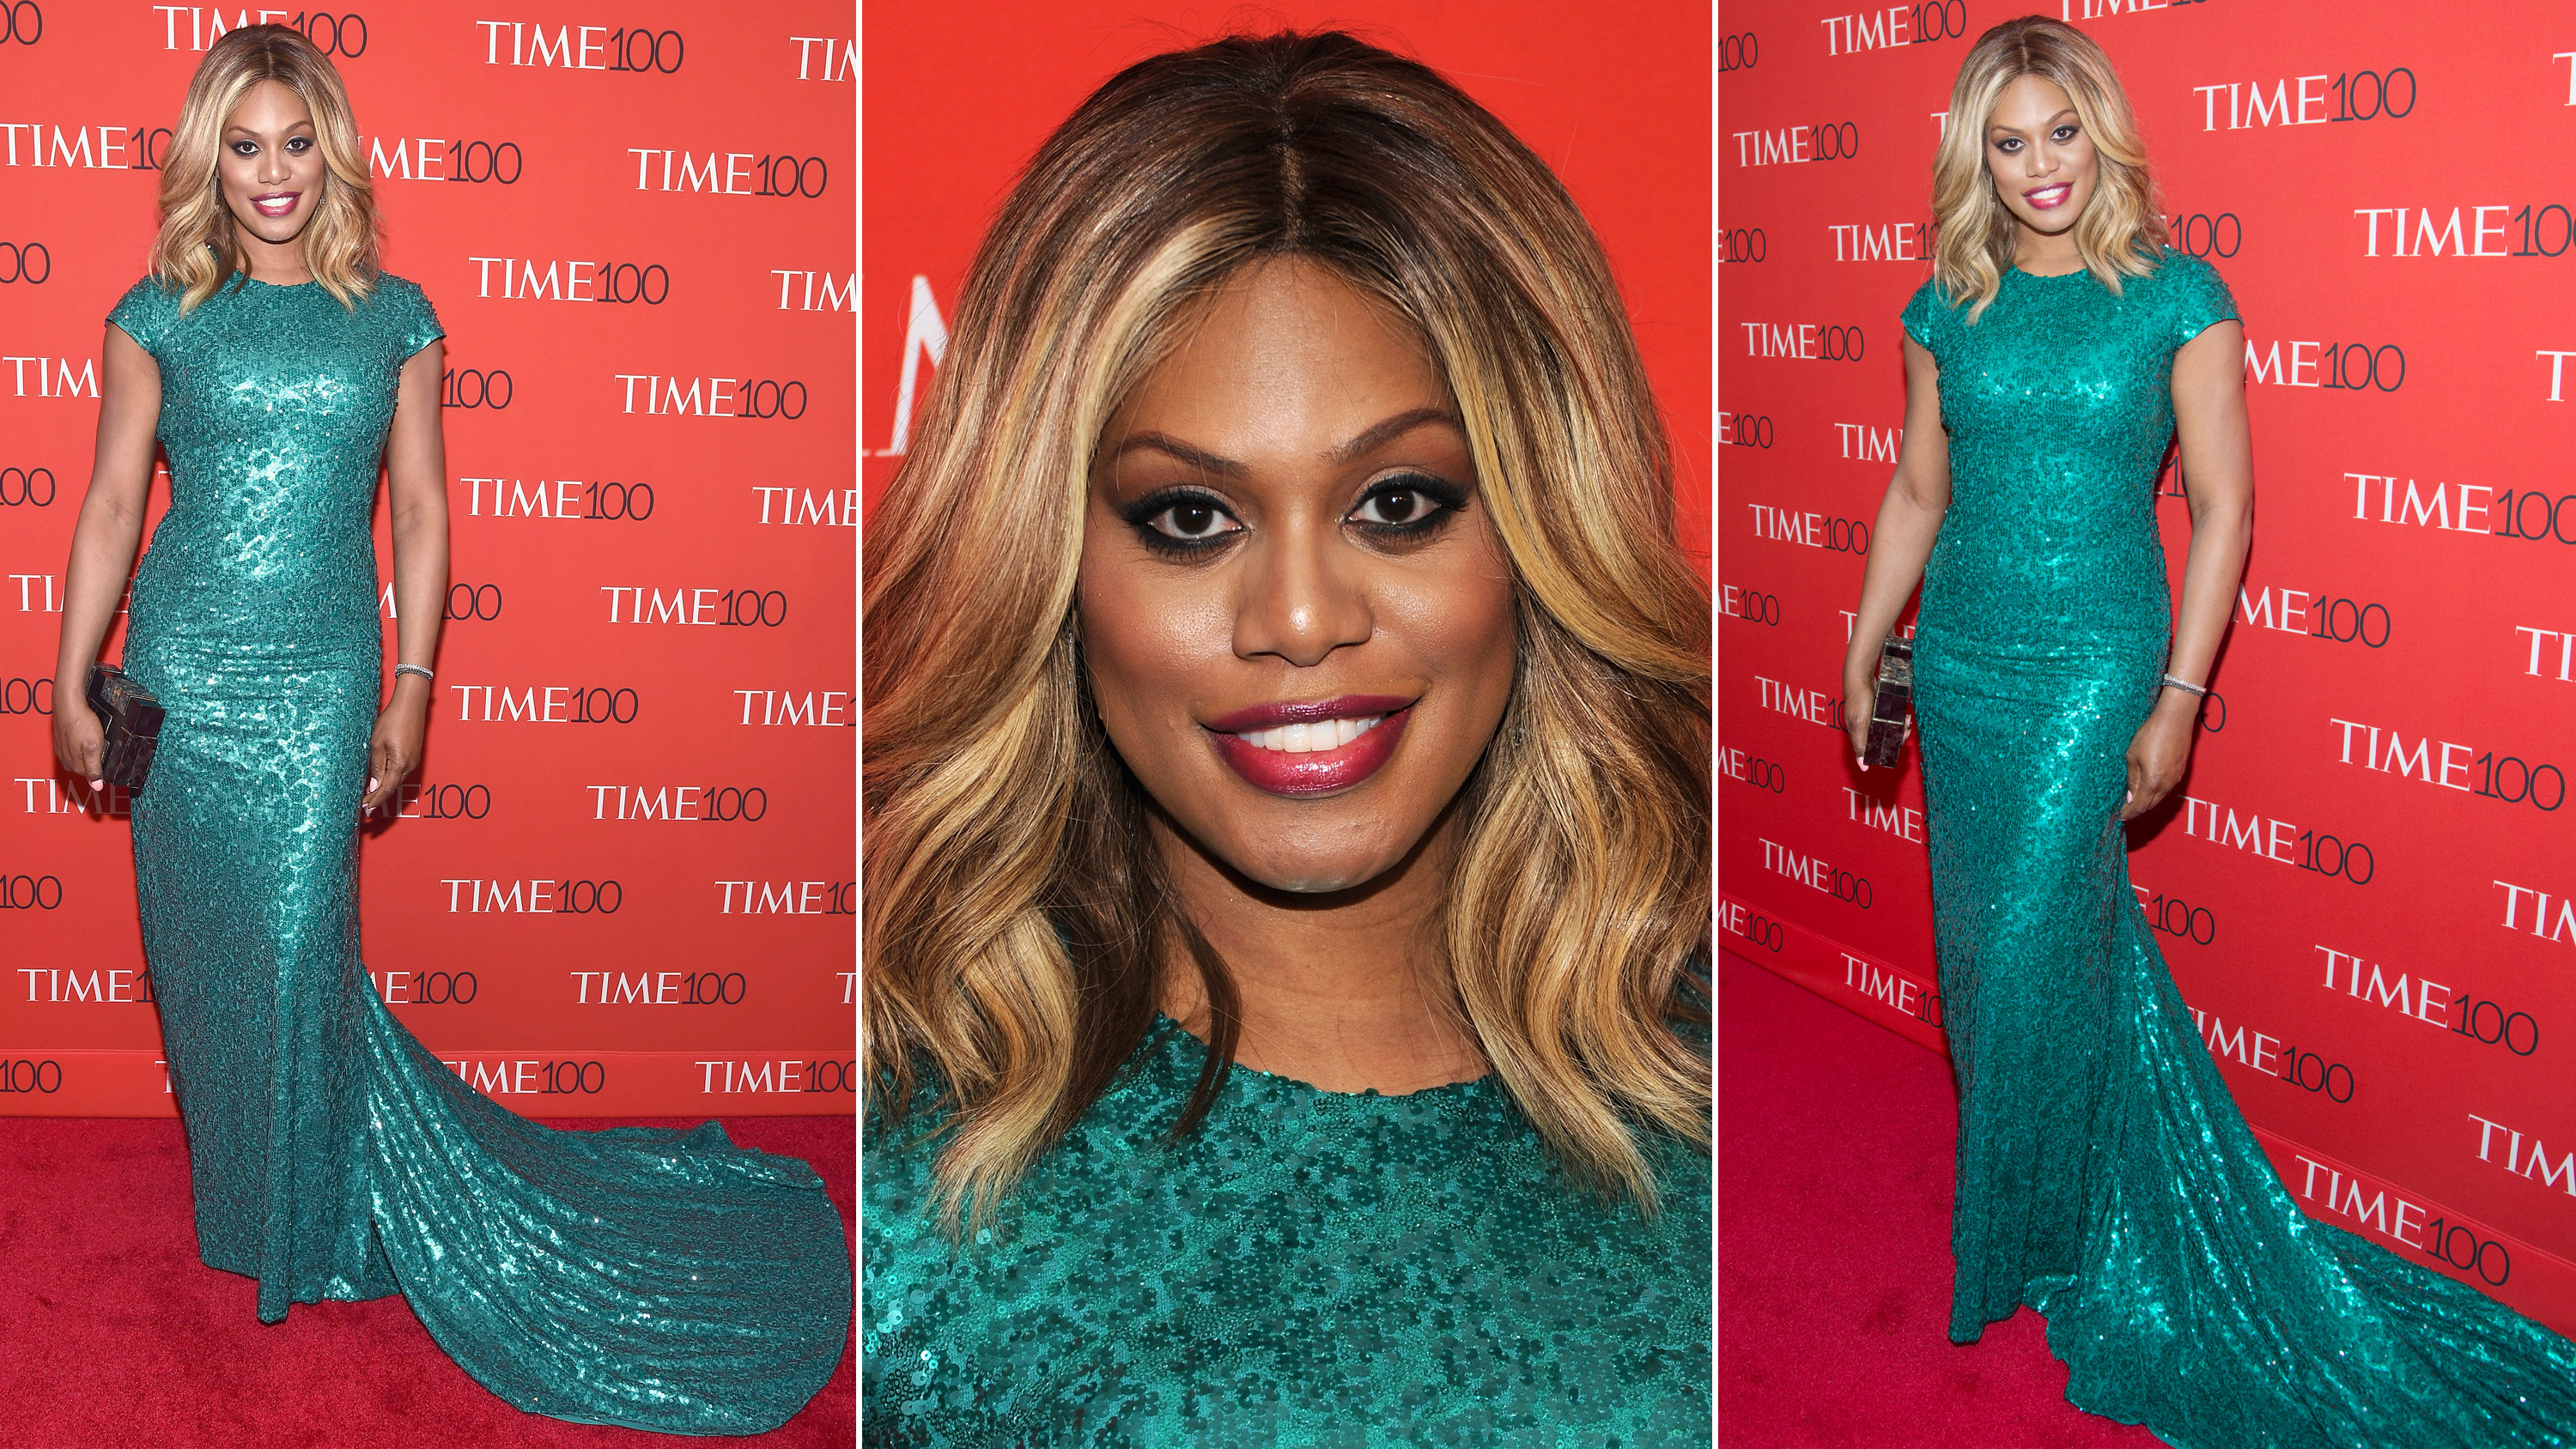 laverne-cox-time-100-gown